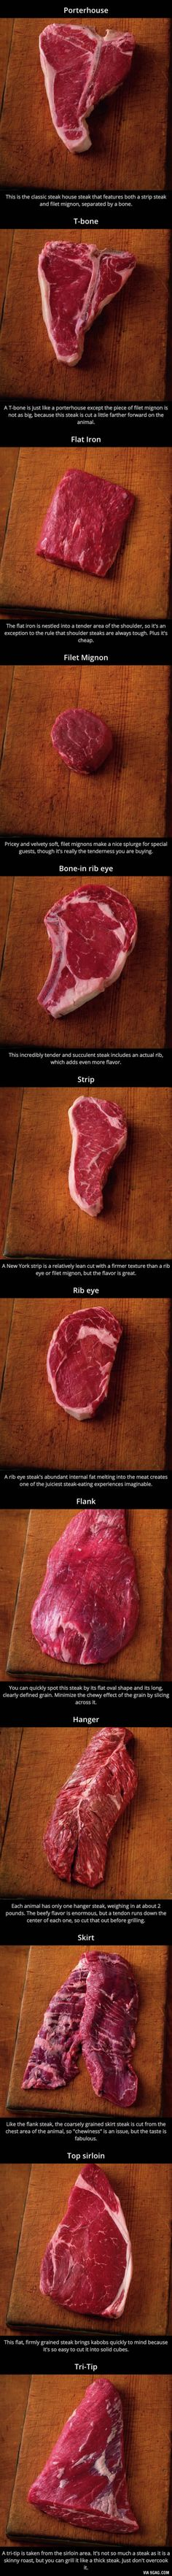 Different Types Of Steak…